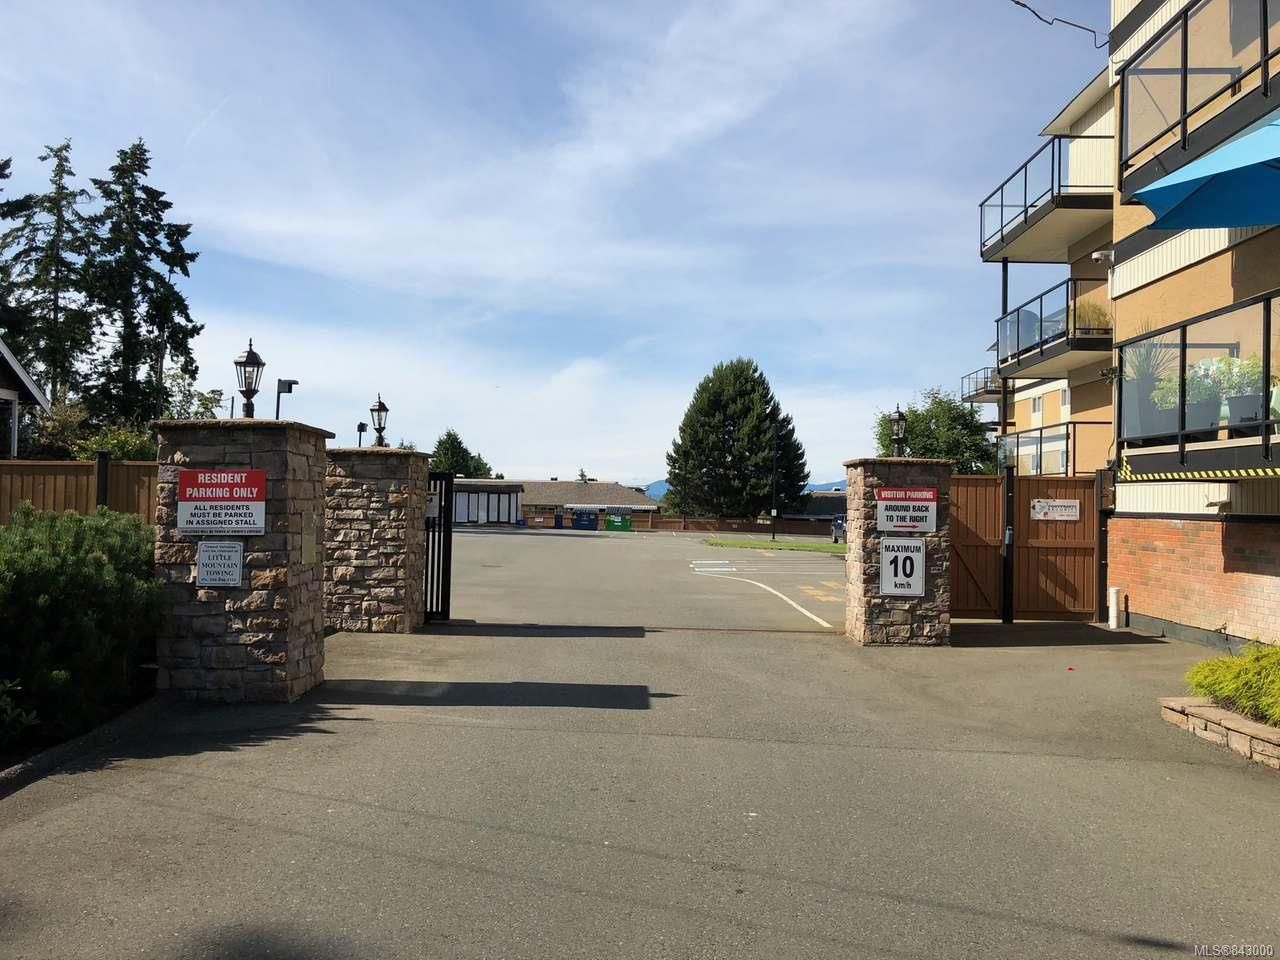 Photo 24: Photos: 405 255 W Hirst Ave in PARKSVILLE: PQ Parksville Condo for sale (Parksville/Qualicum)  : MLS®# 843000